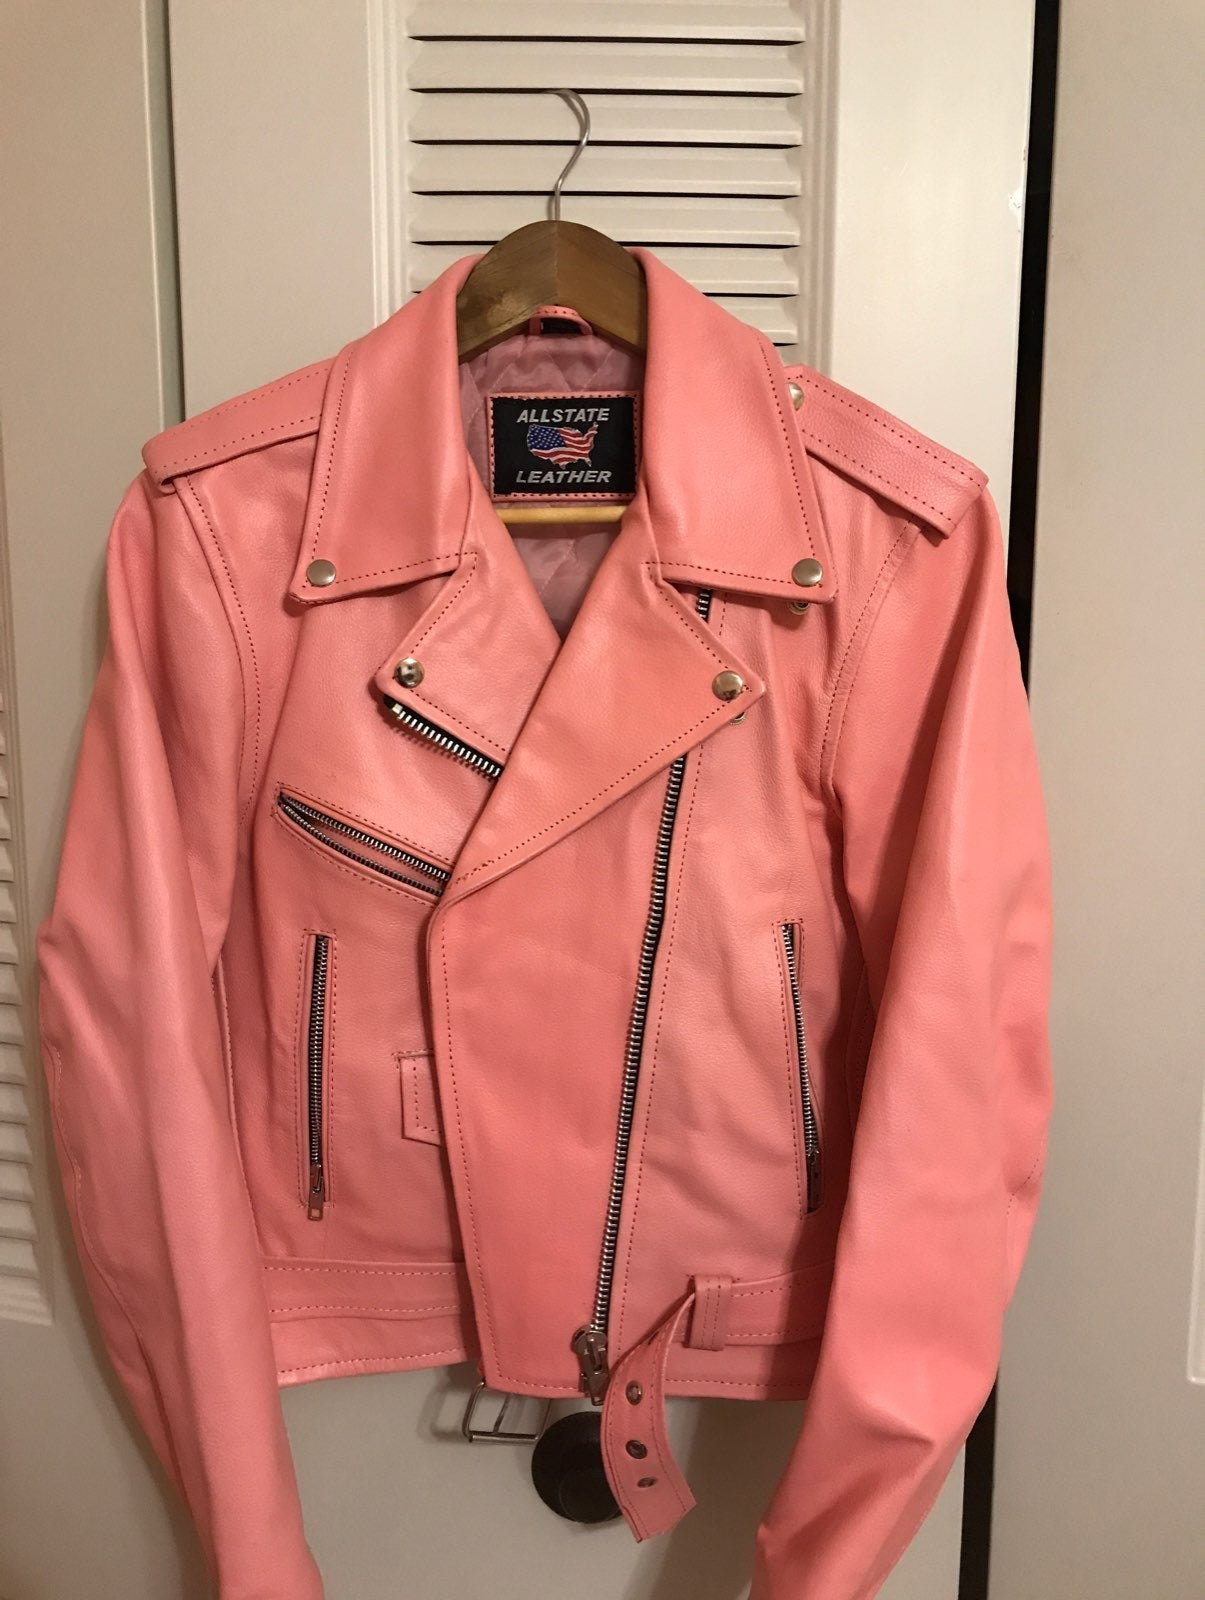 All State Leather Pink Leather Jacket